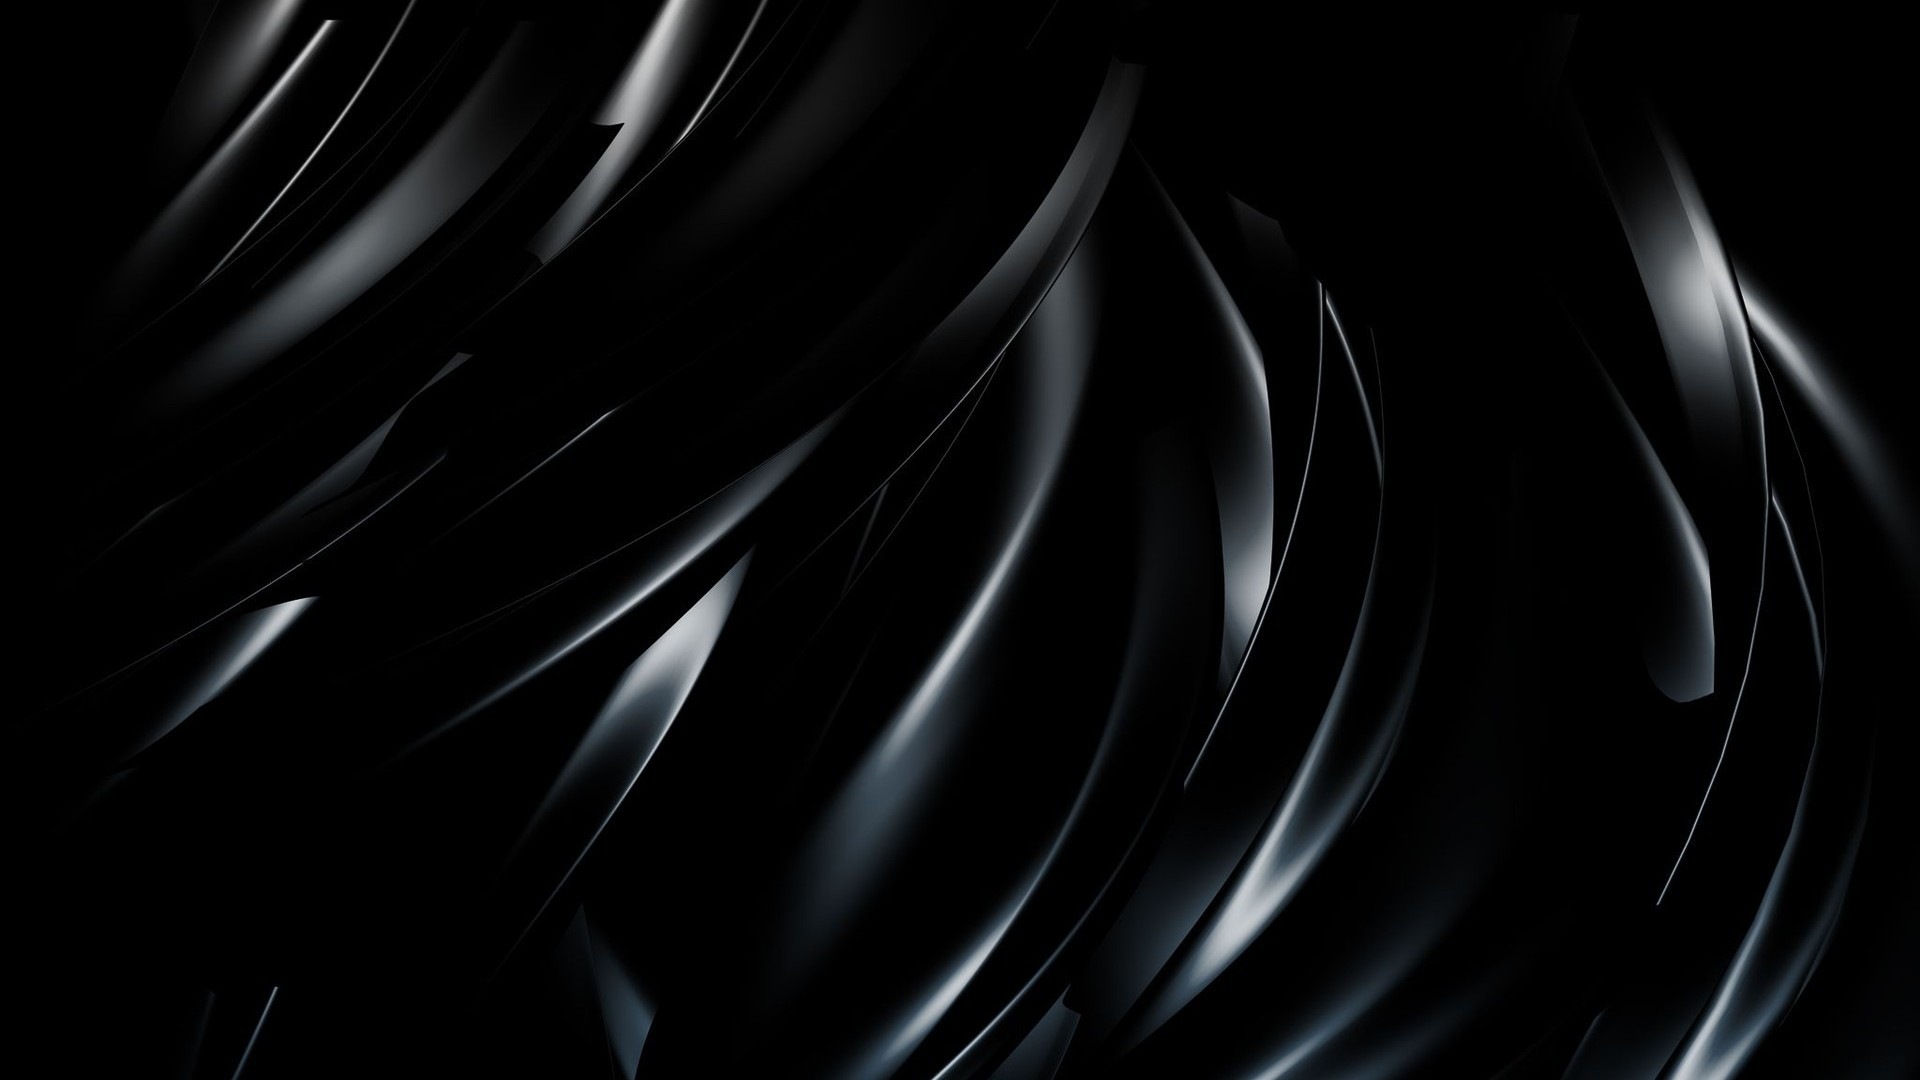 Black Wallpaper HD 1920x1080 Free Download